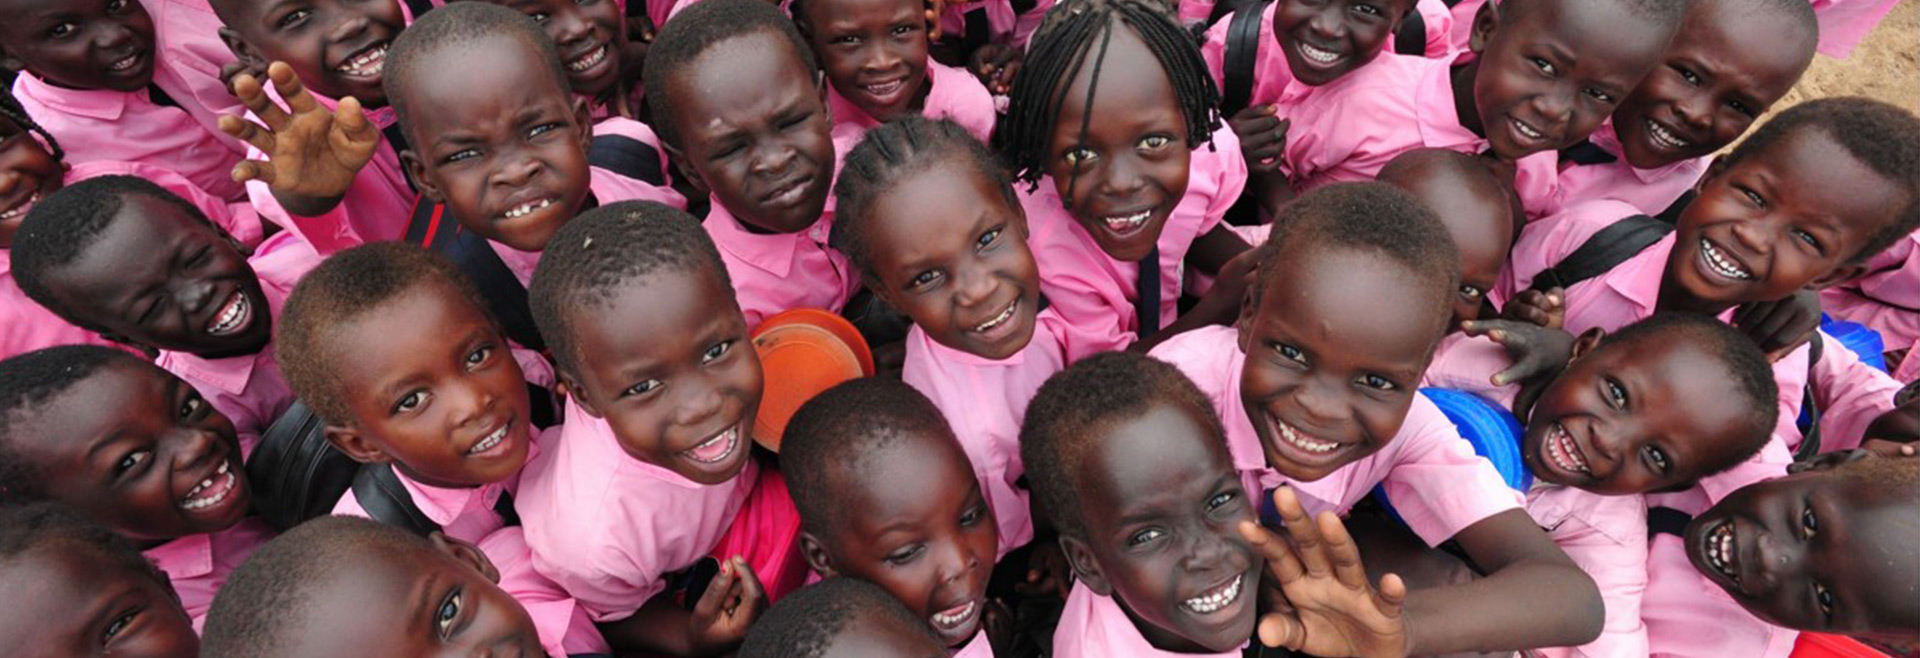 MealEspoirs - Banner - Fun Facts for Kids - Image of Sudanese Children